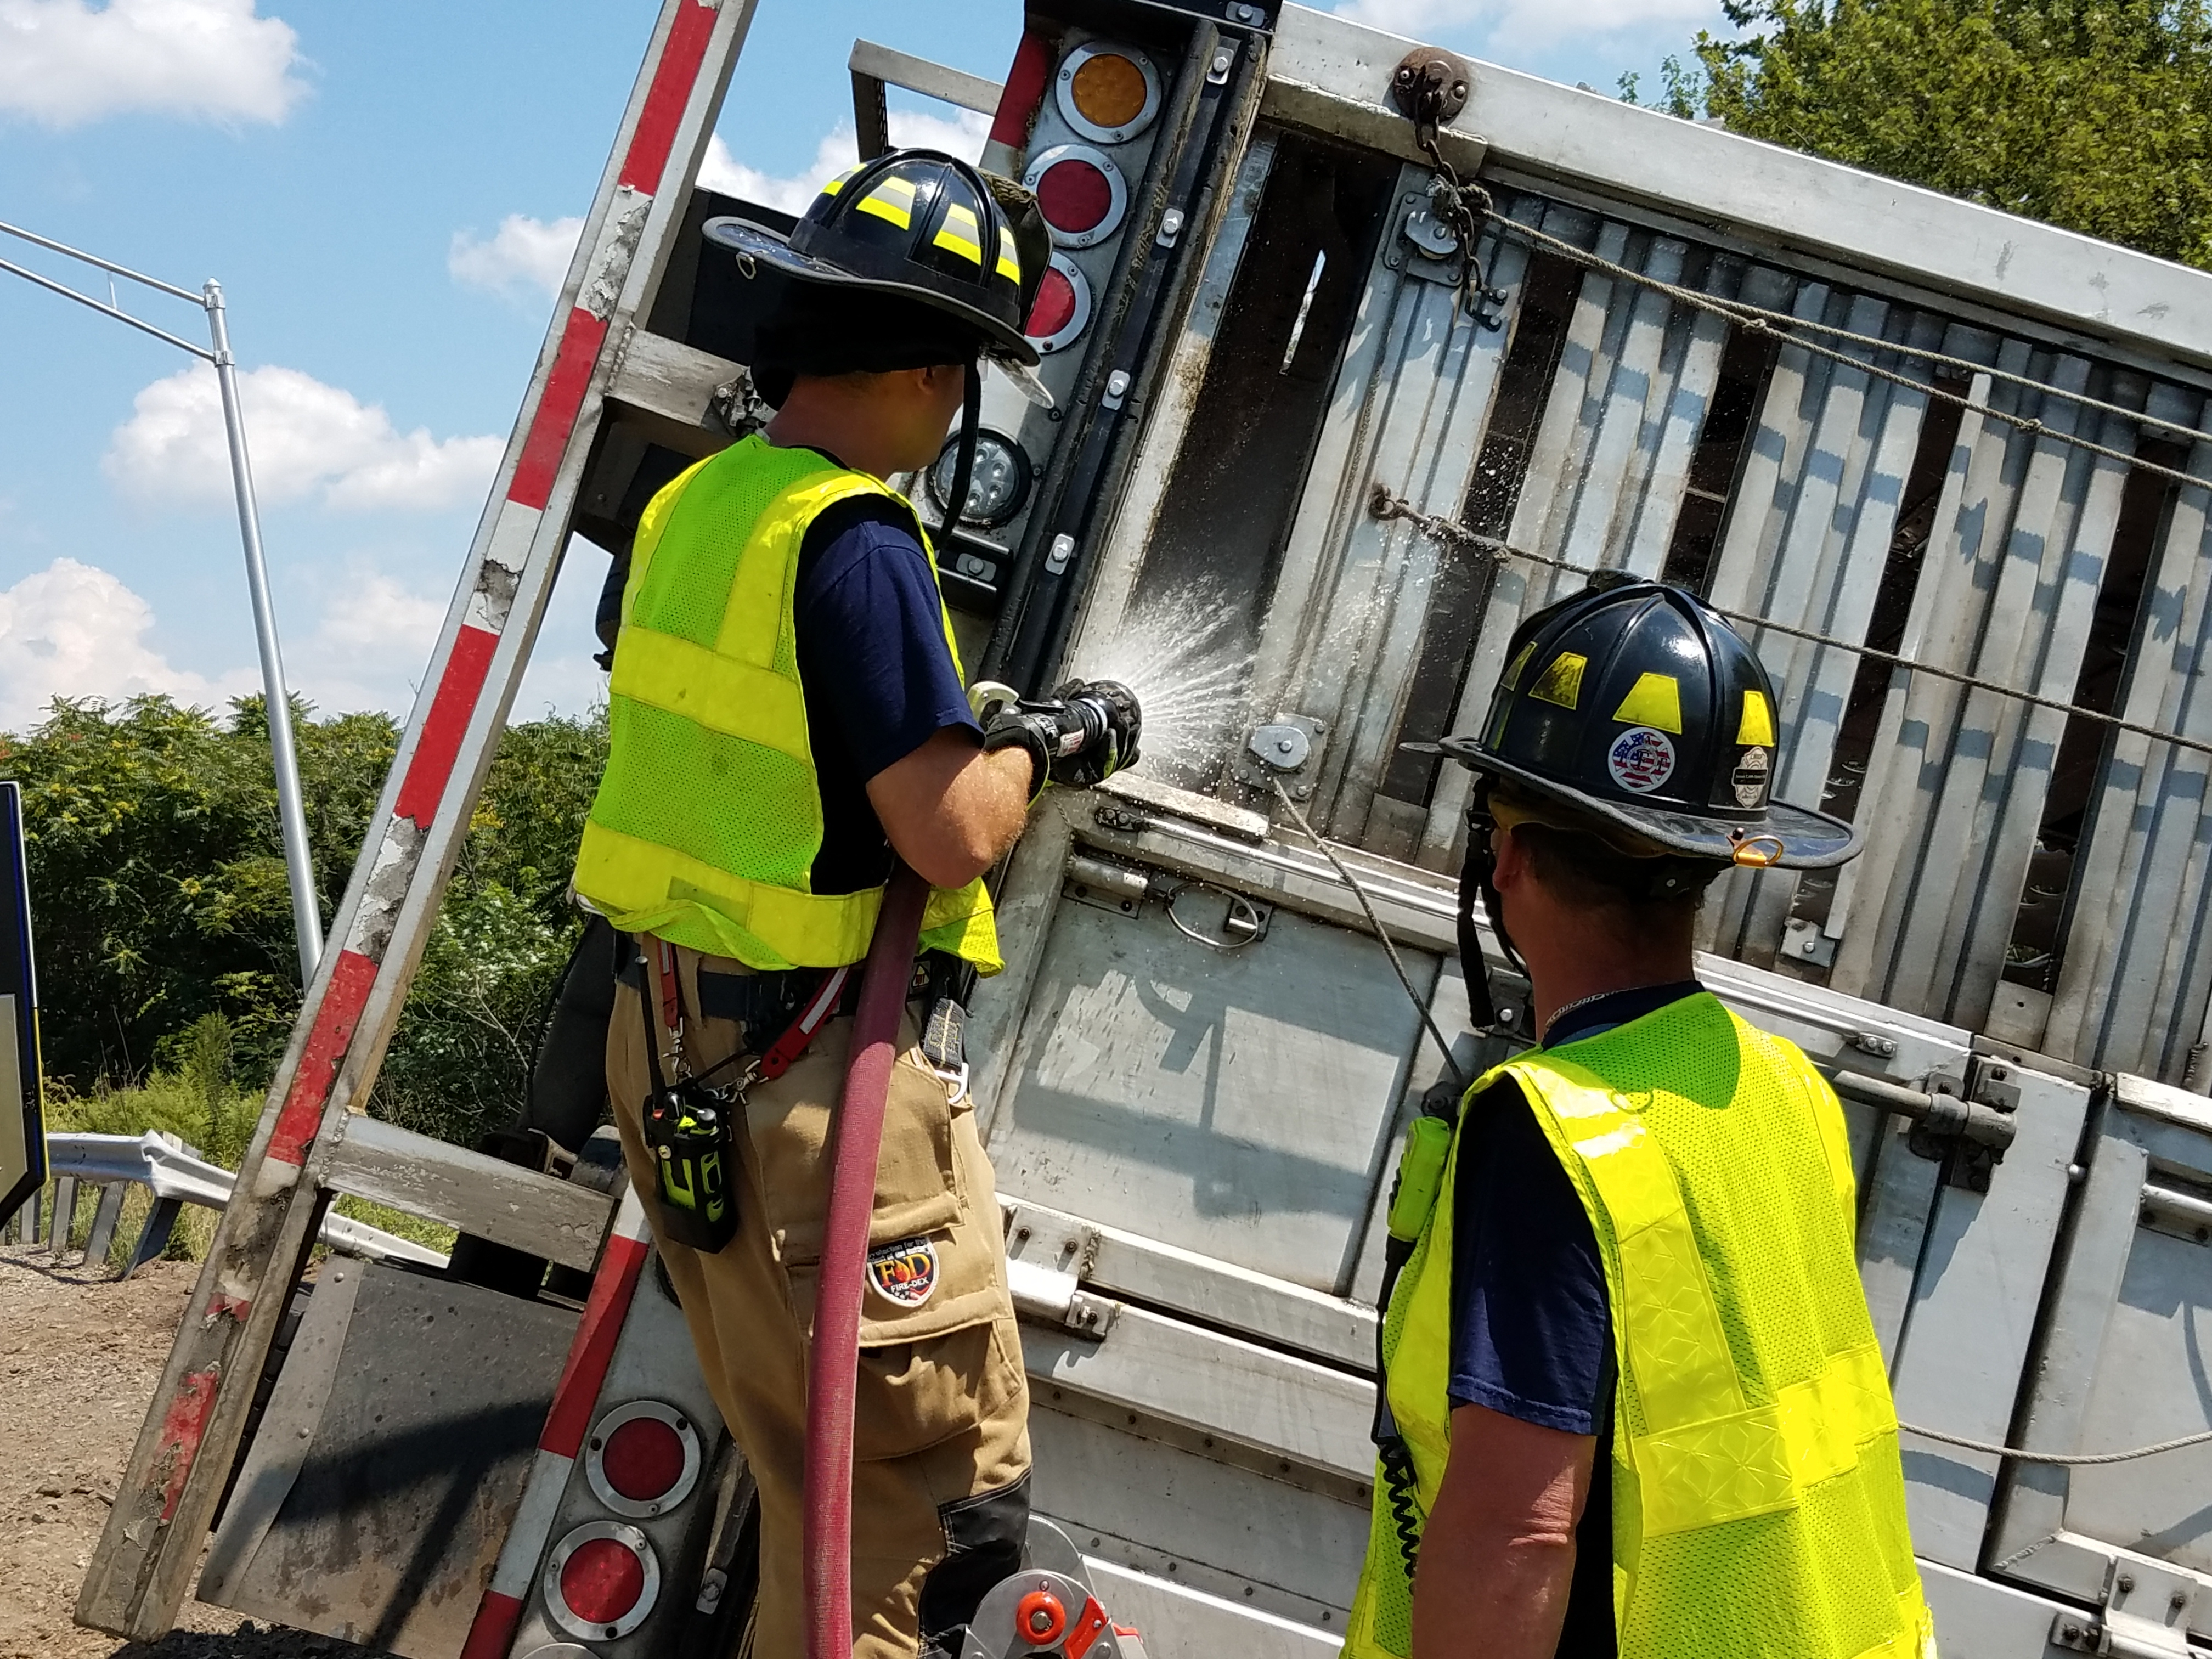 Truck with load of pigs overturns on Route 15 | News Sports Jobs - Williamsport Sun-Gazette & Truck with load of pigs overturns on Route 15 | News Sports Jobs ...